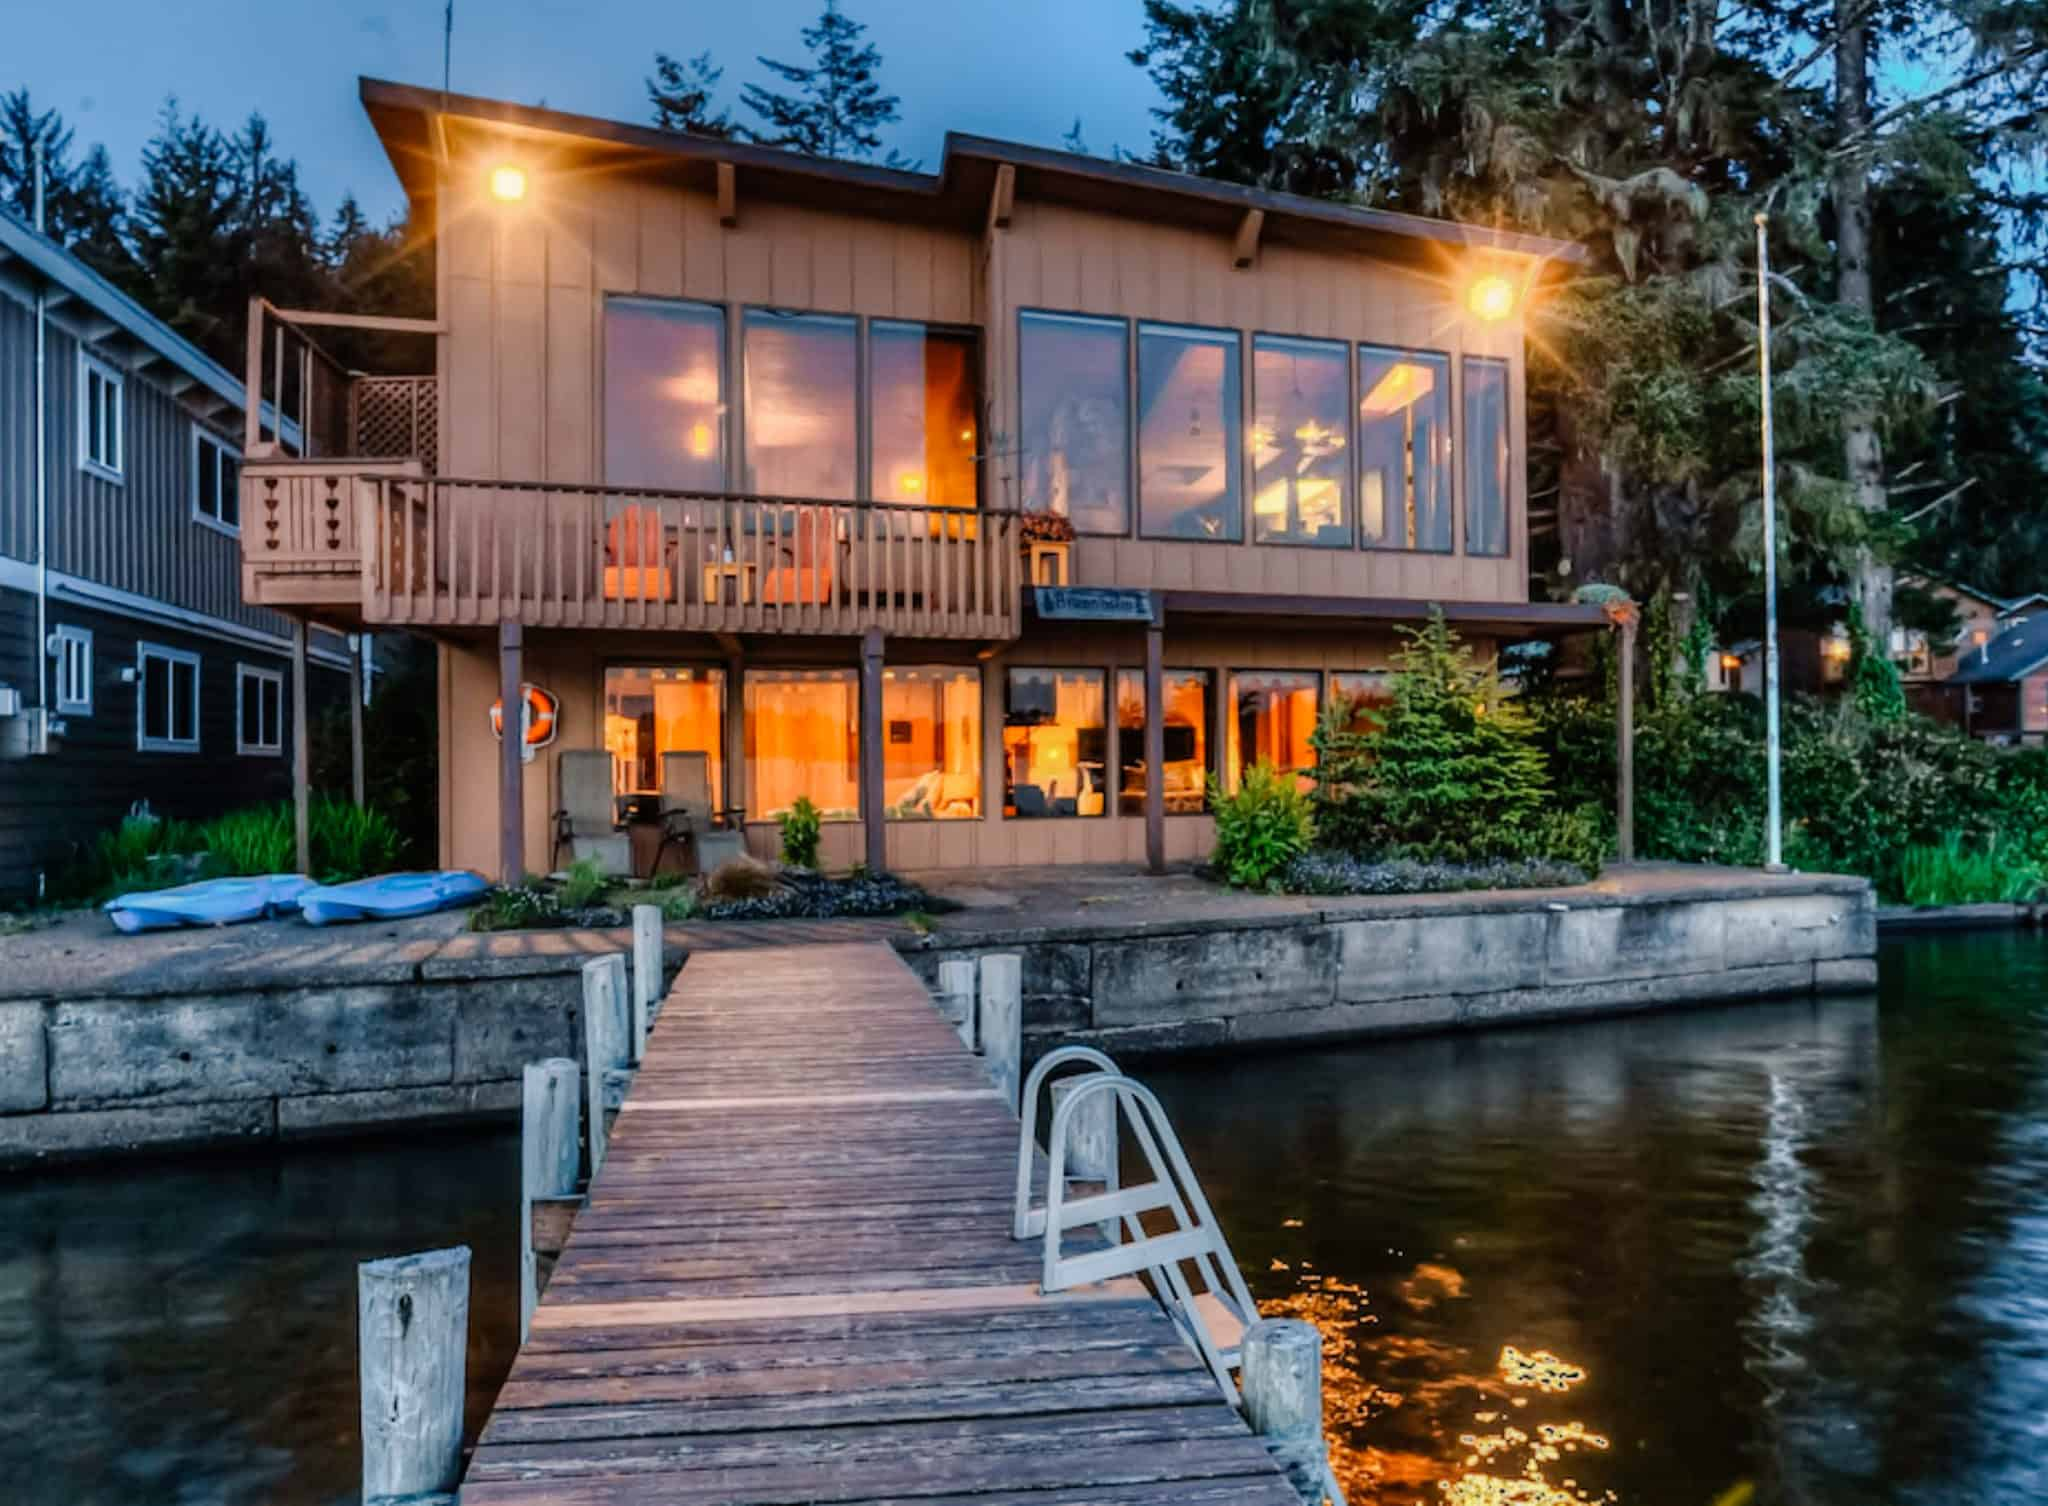 dock leading up to a wooden house with lights sparking on it